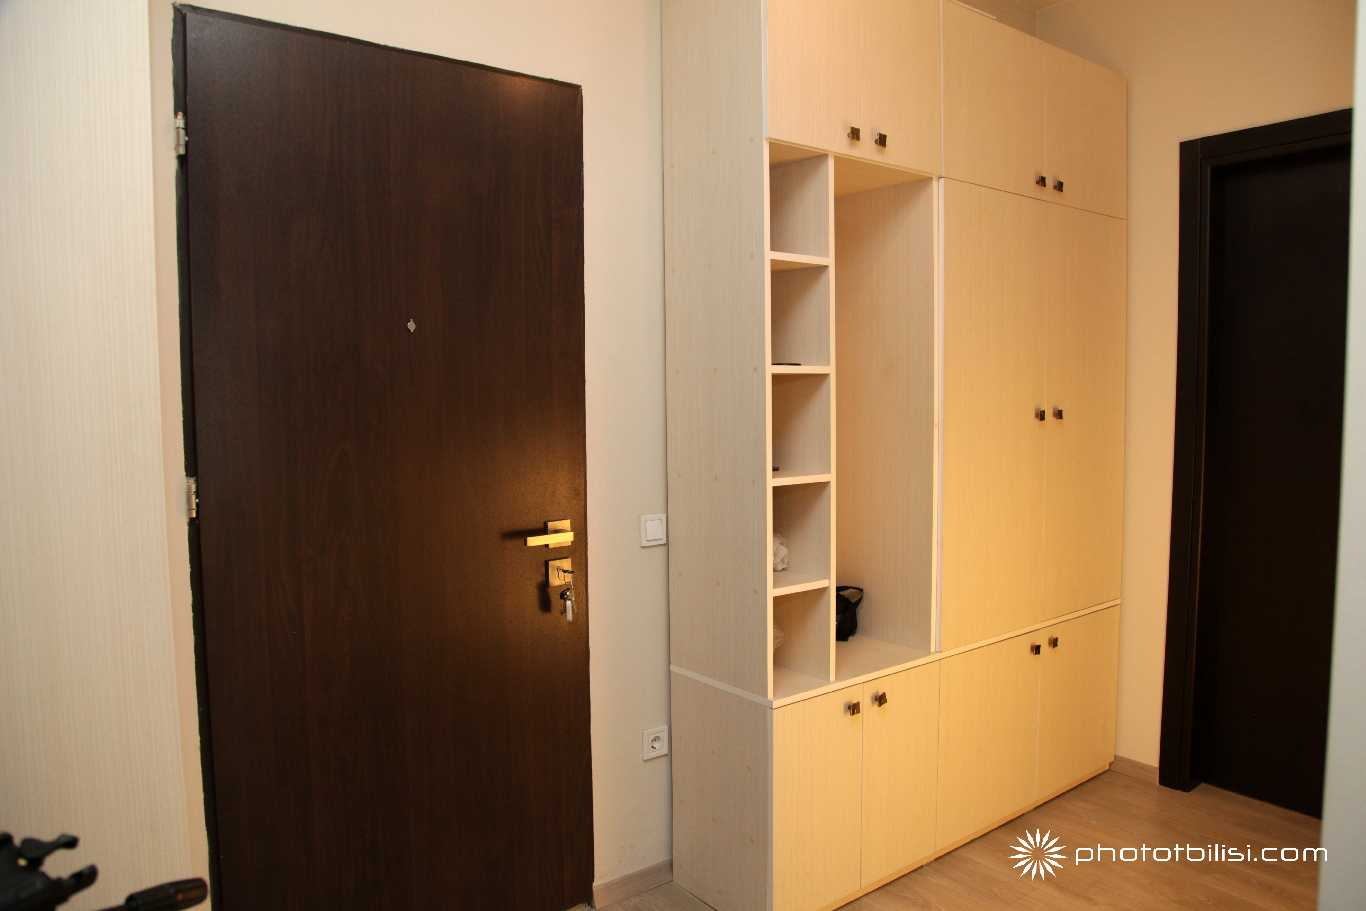 Rent-appartment-in-Tbilisi-IMG_0924